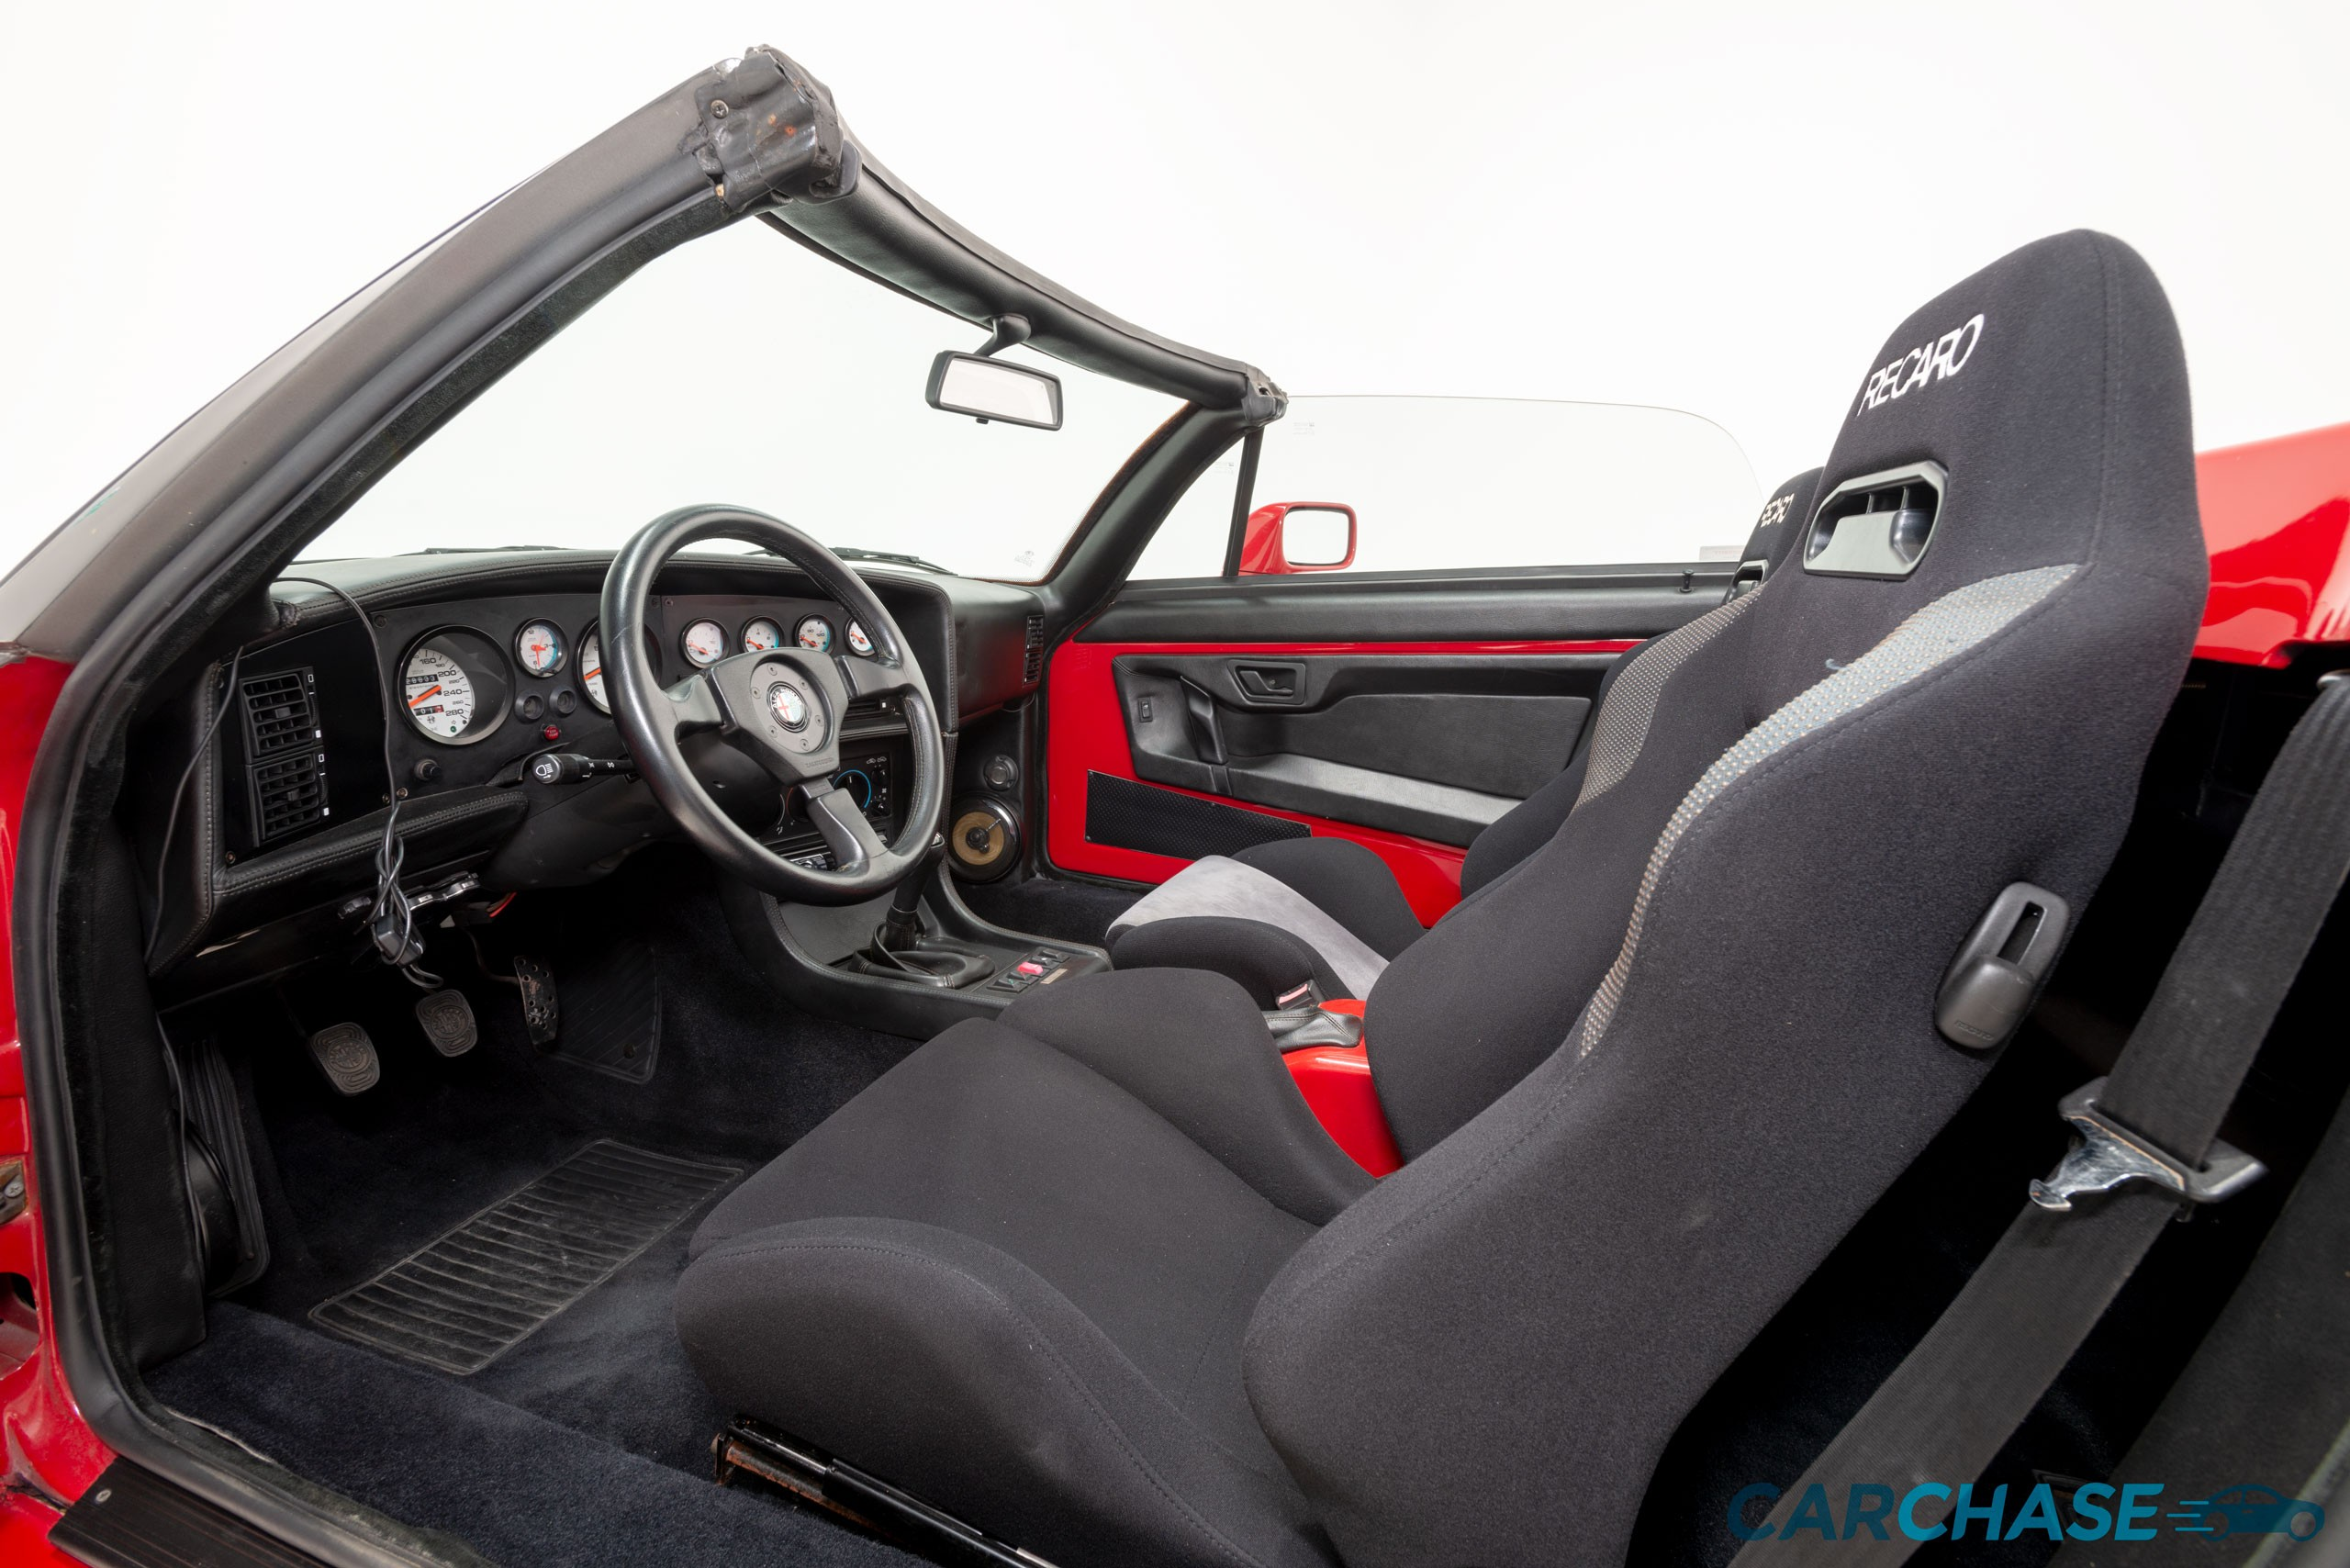 Image of driver profile of 1993 Alfa Romeo Zagato RZ